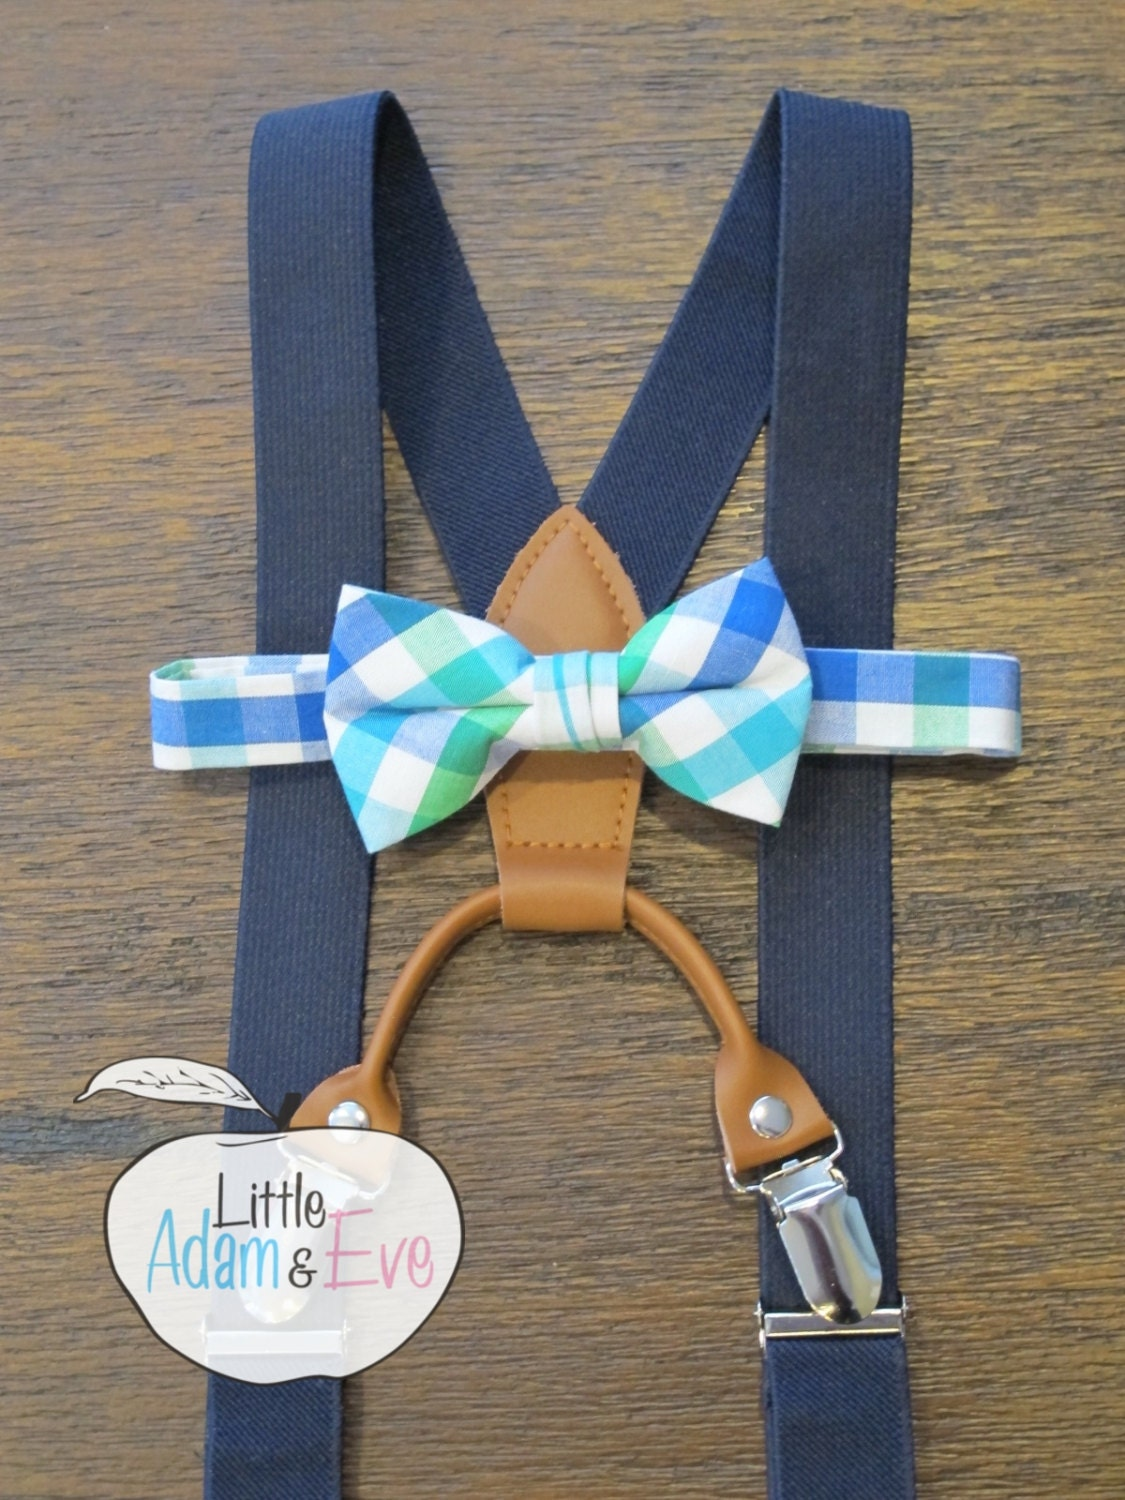 Look to Carter's for your toddler boy Bow Ties. REWARDING MOMENTS ® Toddler Boy Bow Ties & Suspenders. 5 items. Sort By: SIMPLE JOYS, OSHKOSH, OSHKOSH B'GOSH, B'GOSH, BABY B'GOSH, ALWAYS BE GENUINE, SKIP*HOP, and MUST HAVES*MADE BETTER are trademarks owned by subsidiaries of Carter's, Inc.